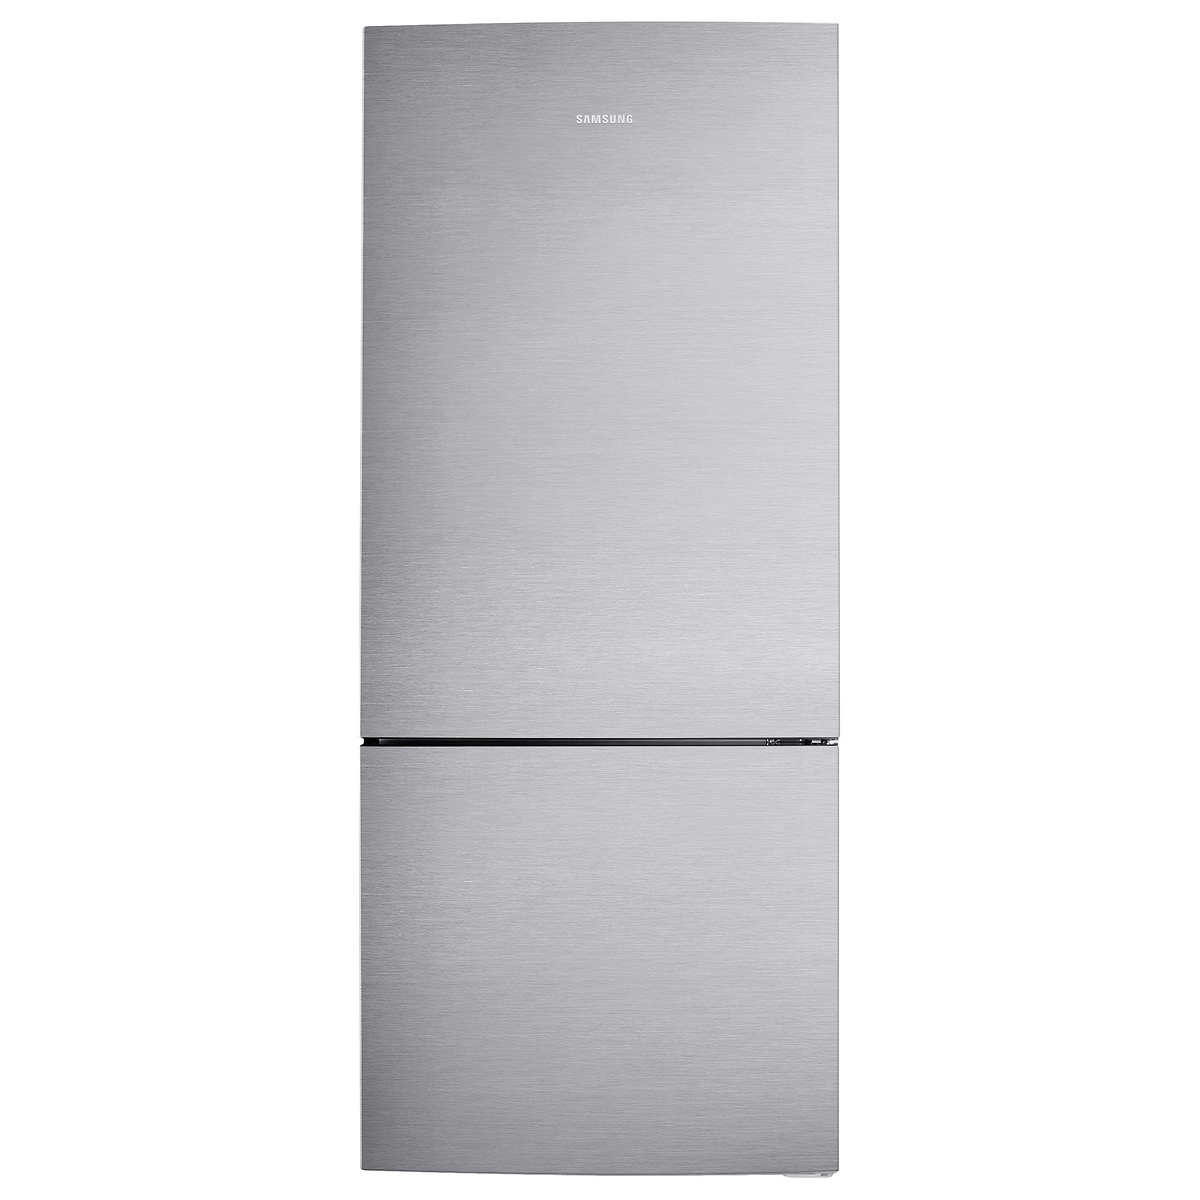 Samsung Fridge RL1505SBASR